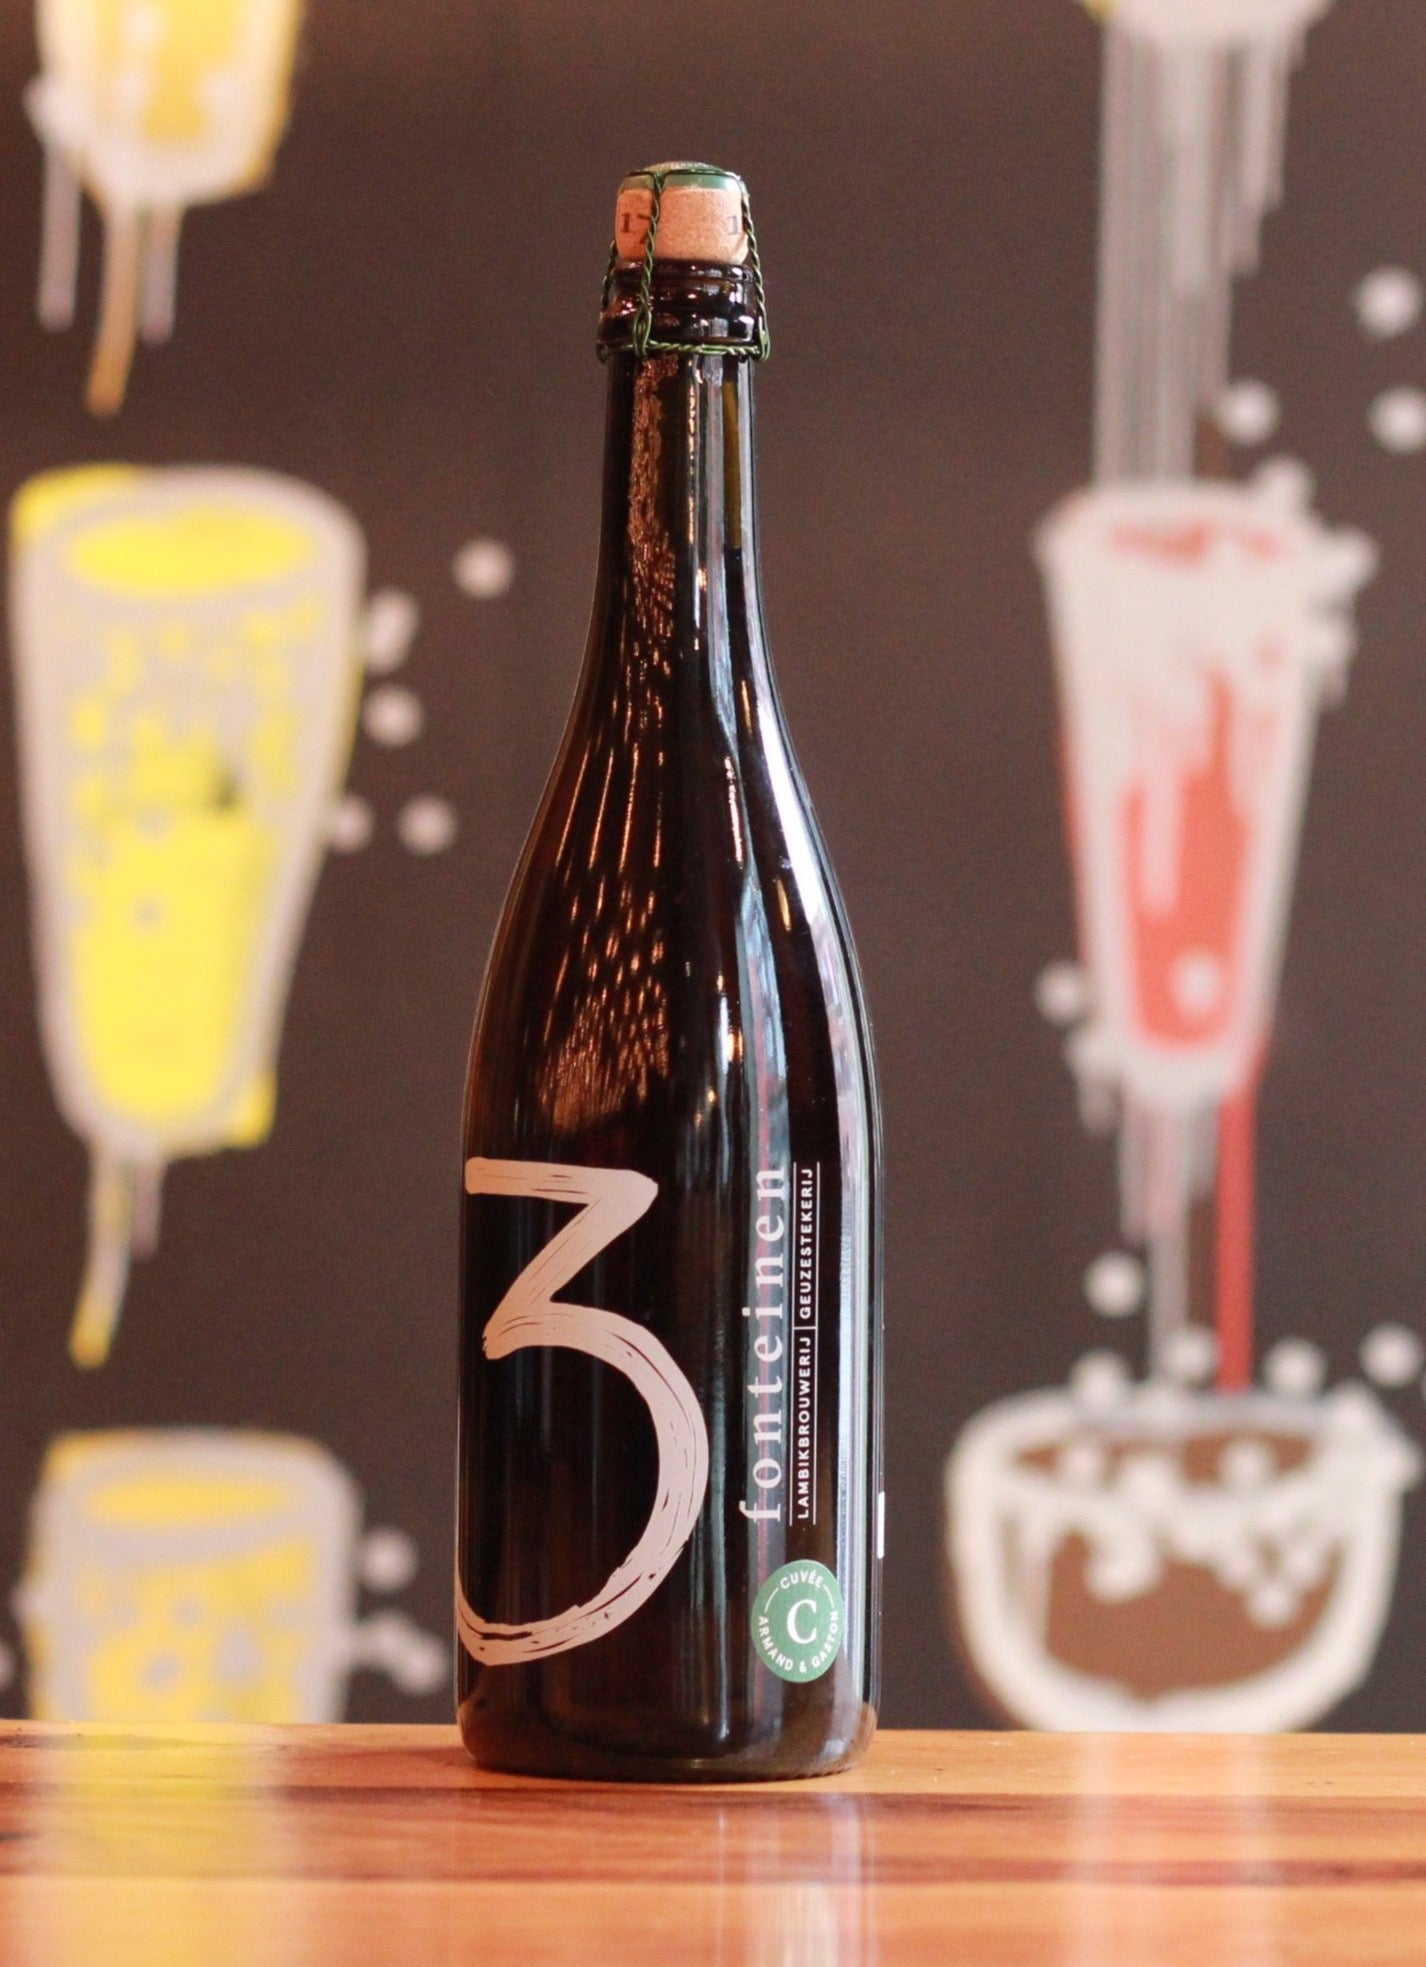 3 Fonteinen Armand & Gaston 750ml | 2016